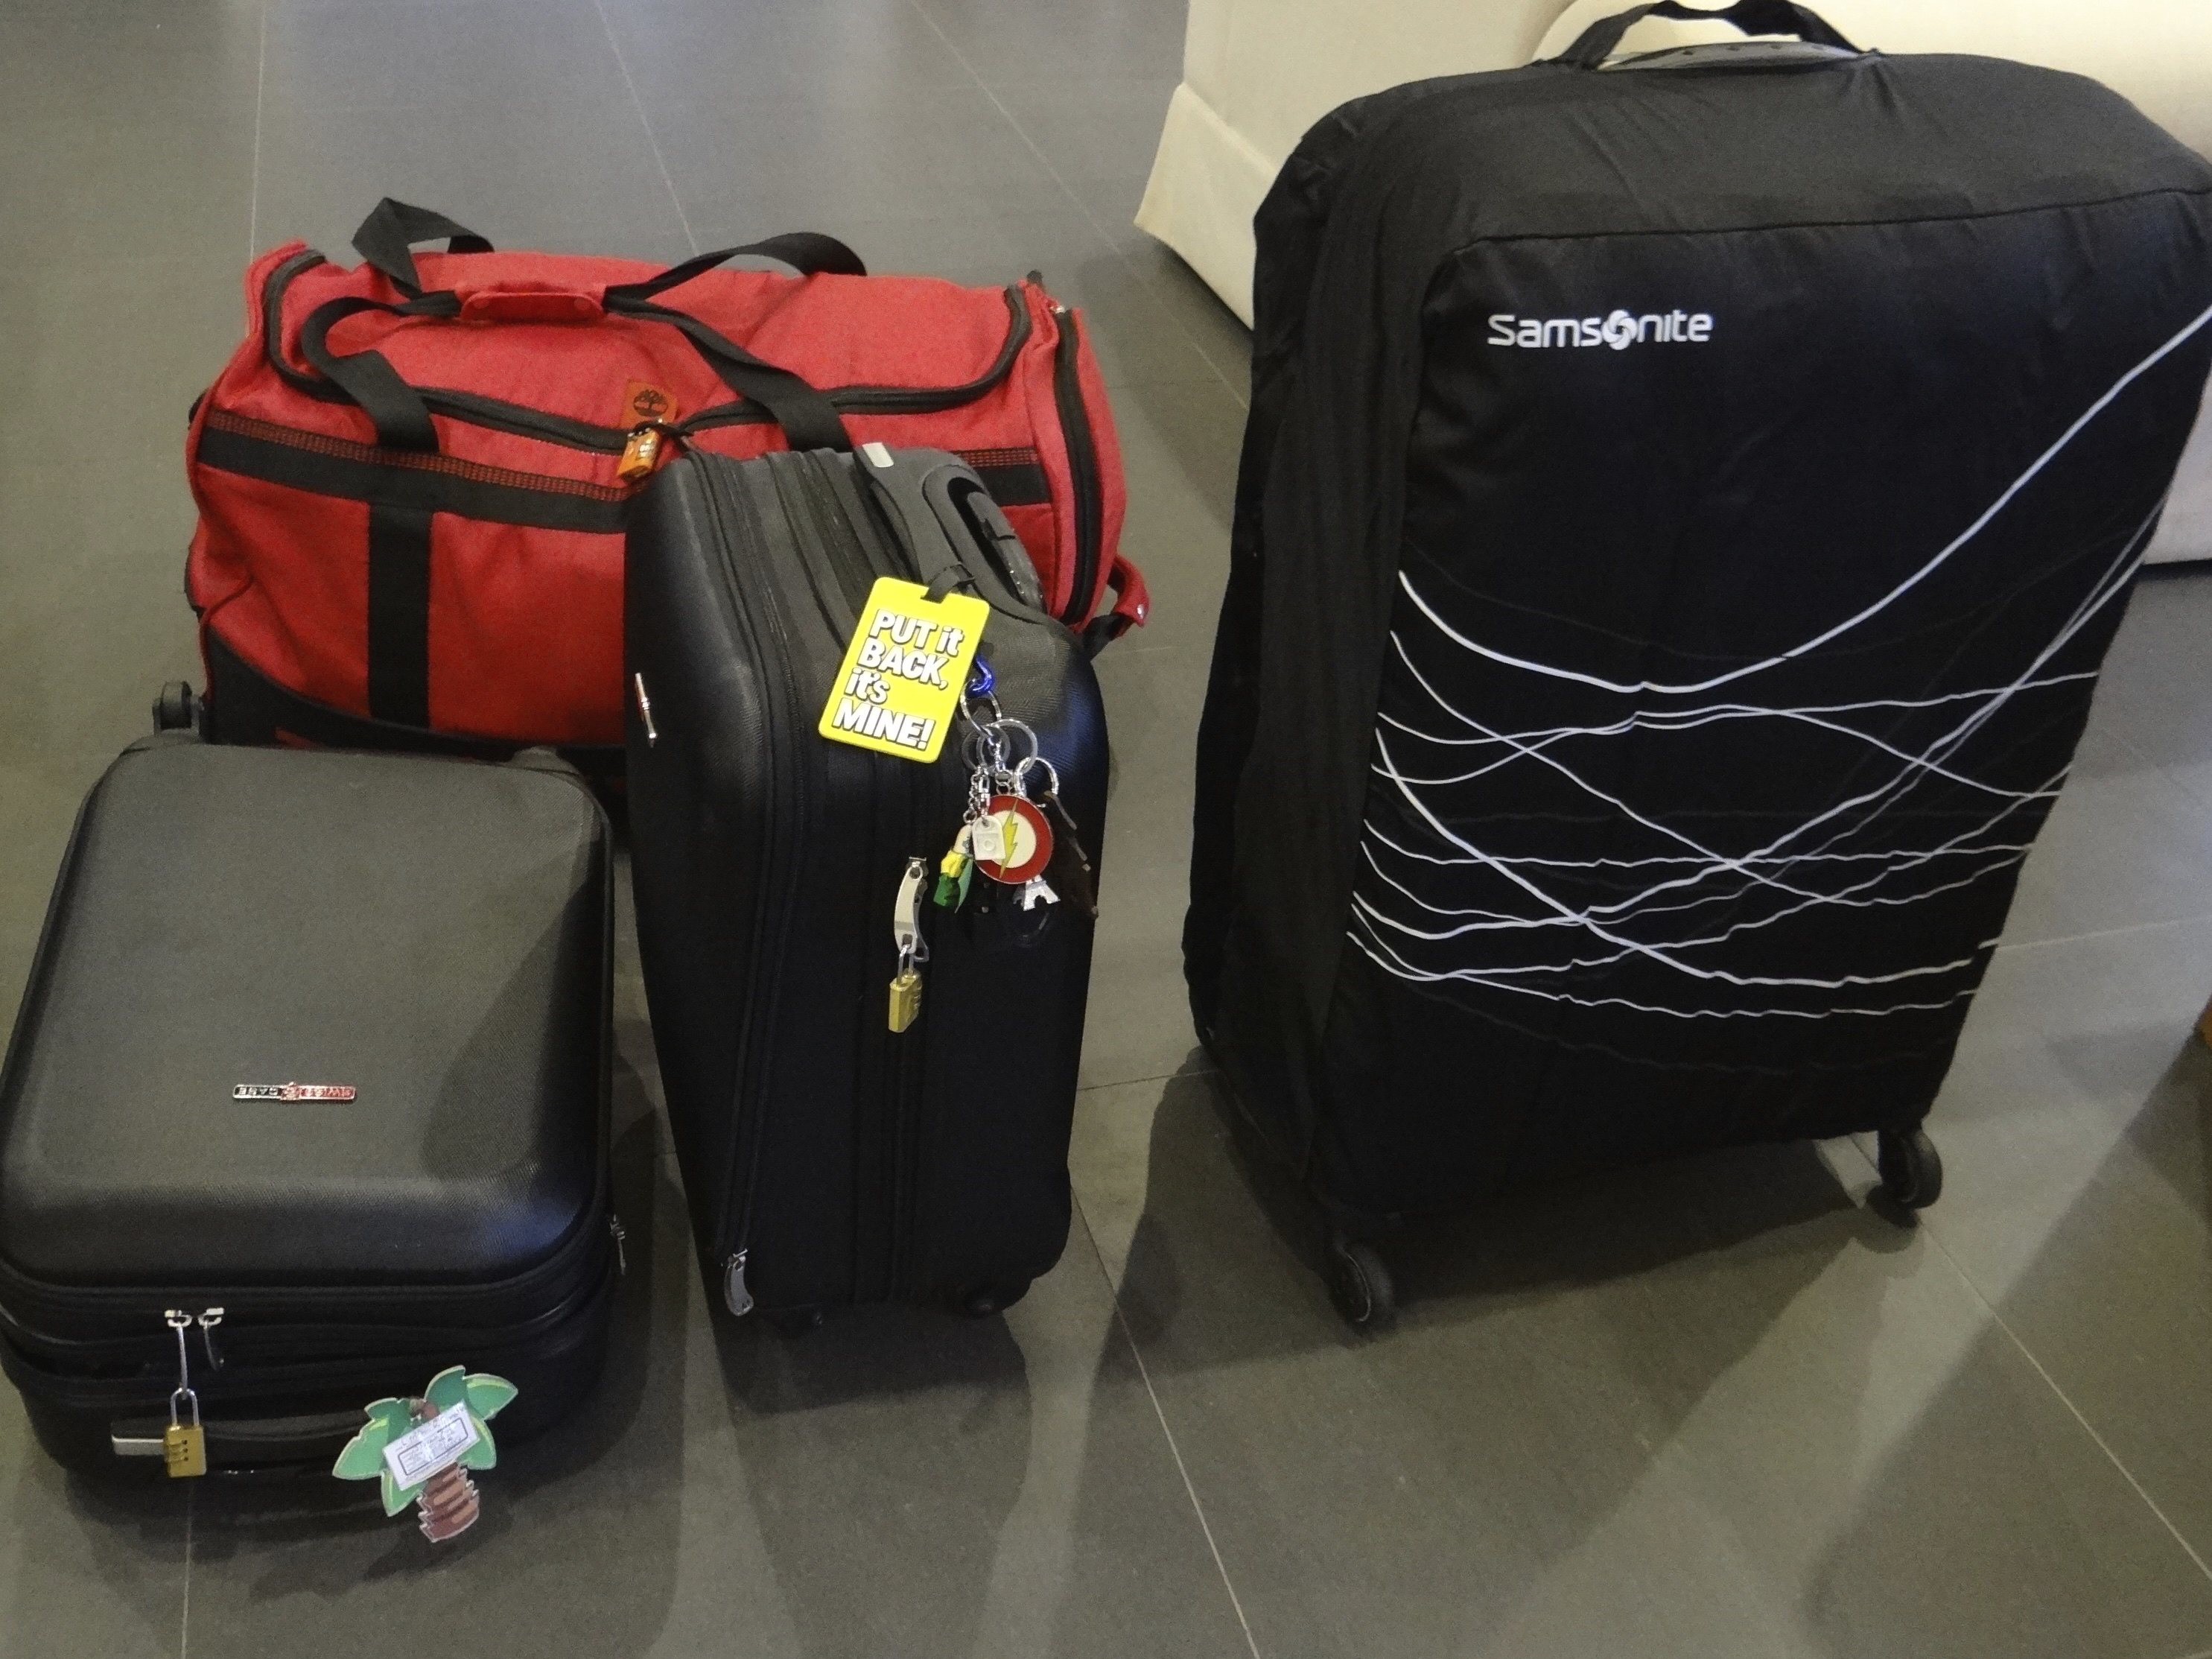 Covid-19 Preparing to travel again